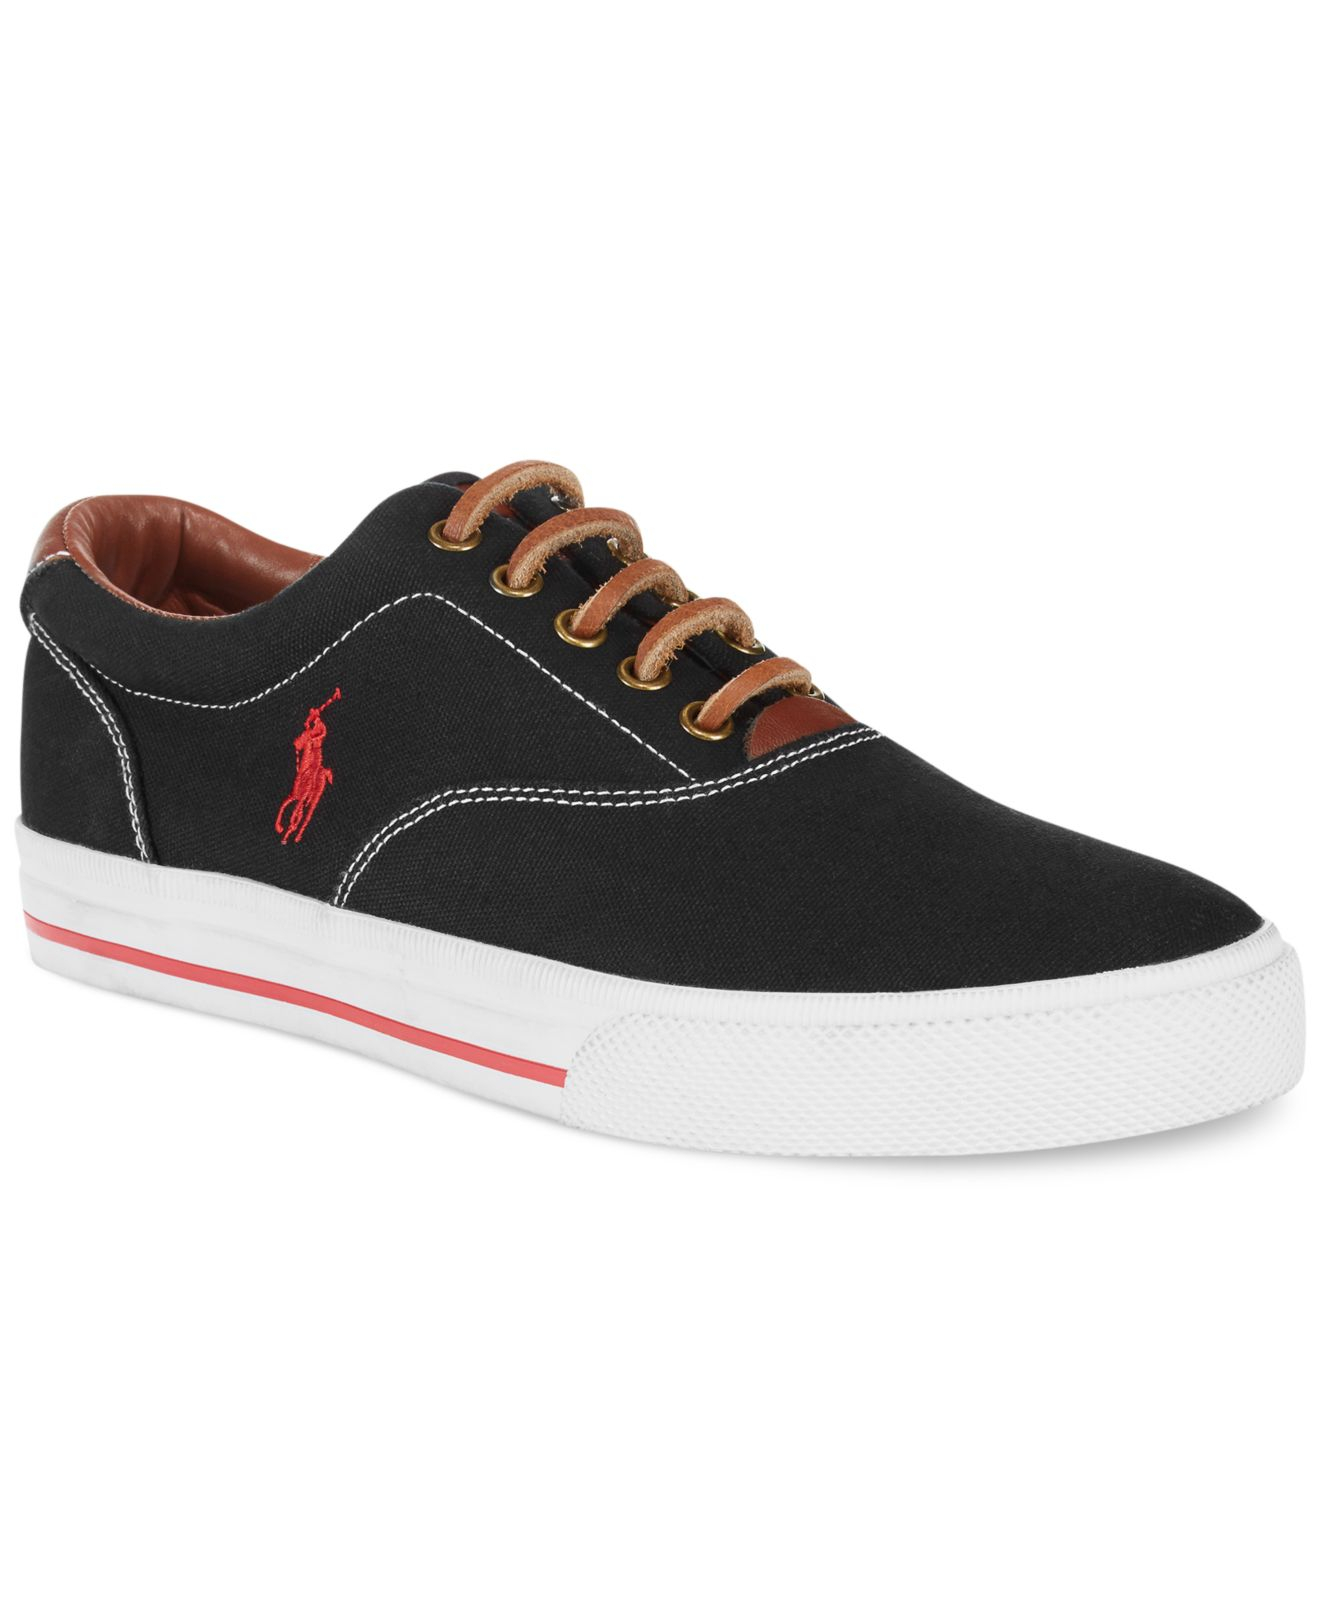 polo ralph lauren vaughn canvas sneakers in black for men lyst. Black Bedroom Furniture Sets. Home Design Ideas